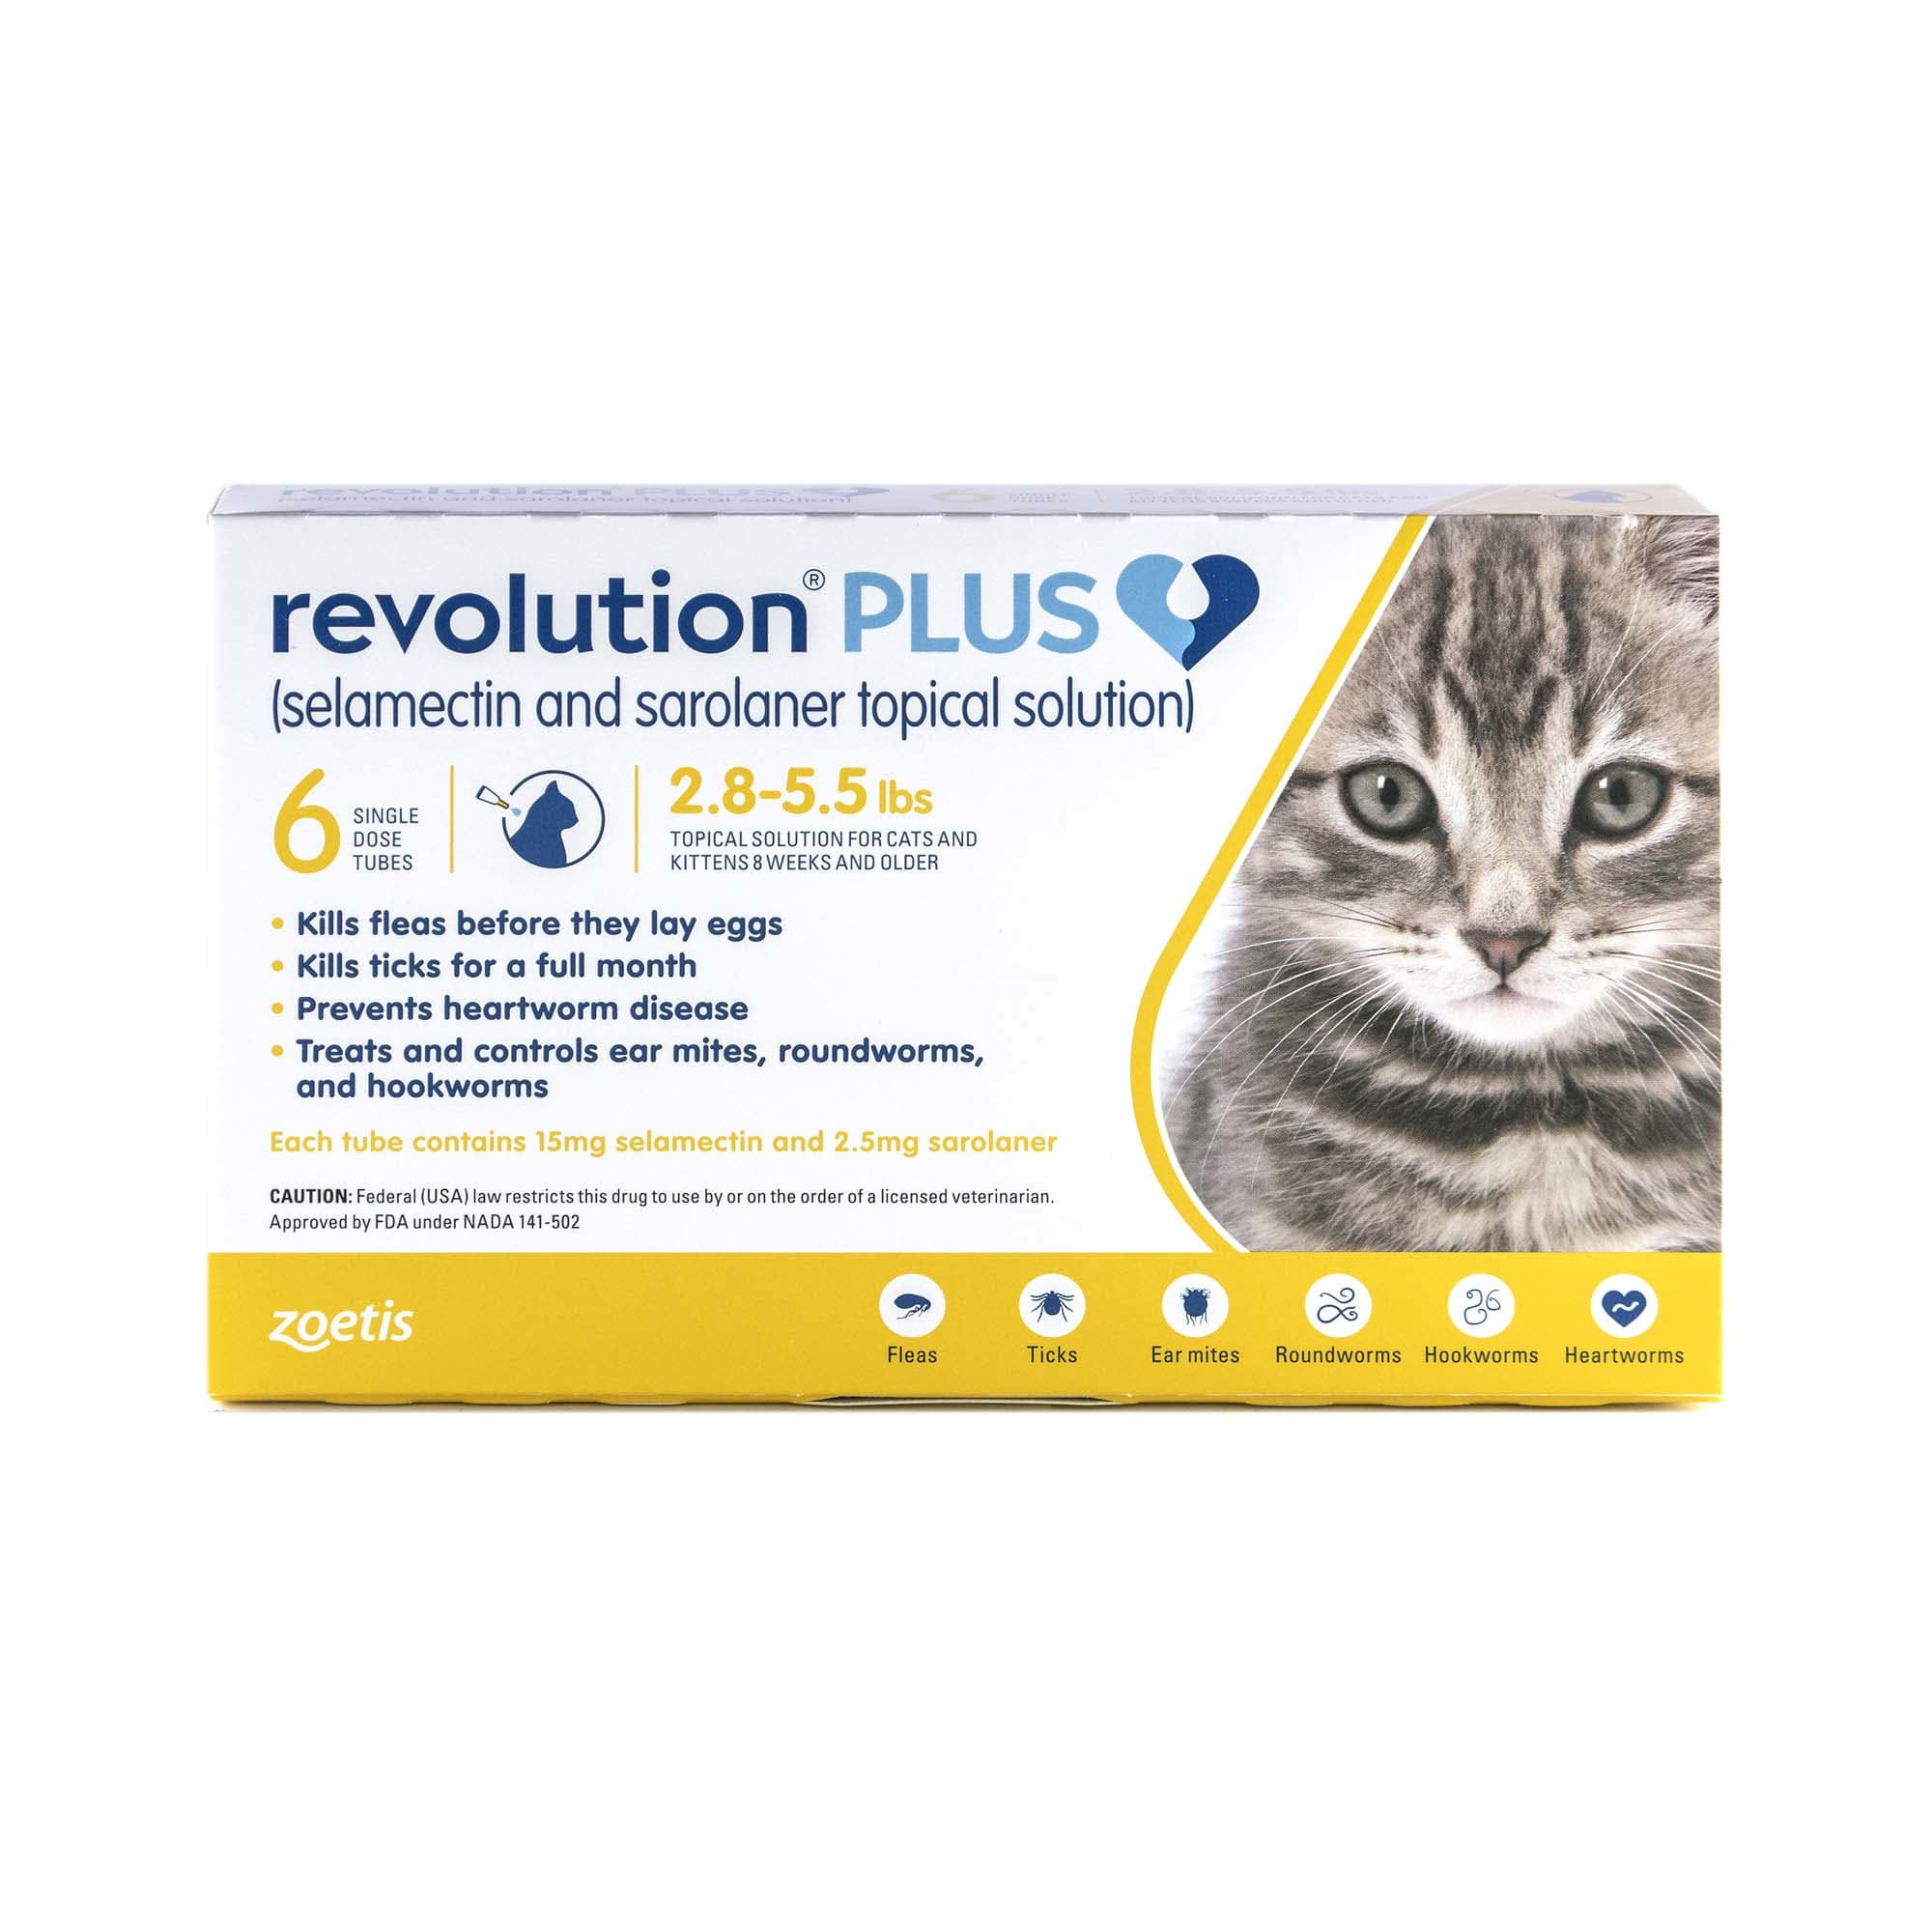 Revolution Plus Topical Solution 2 8 5 5lbs Cat 3 Month Supply Petco